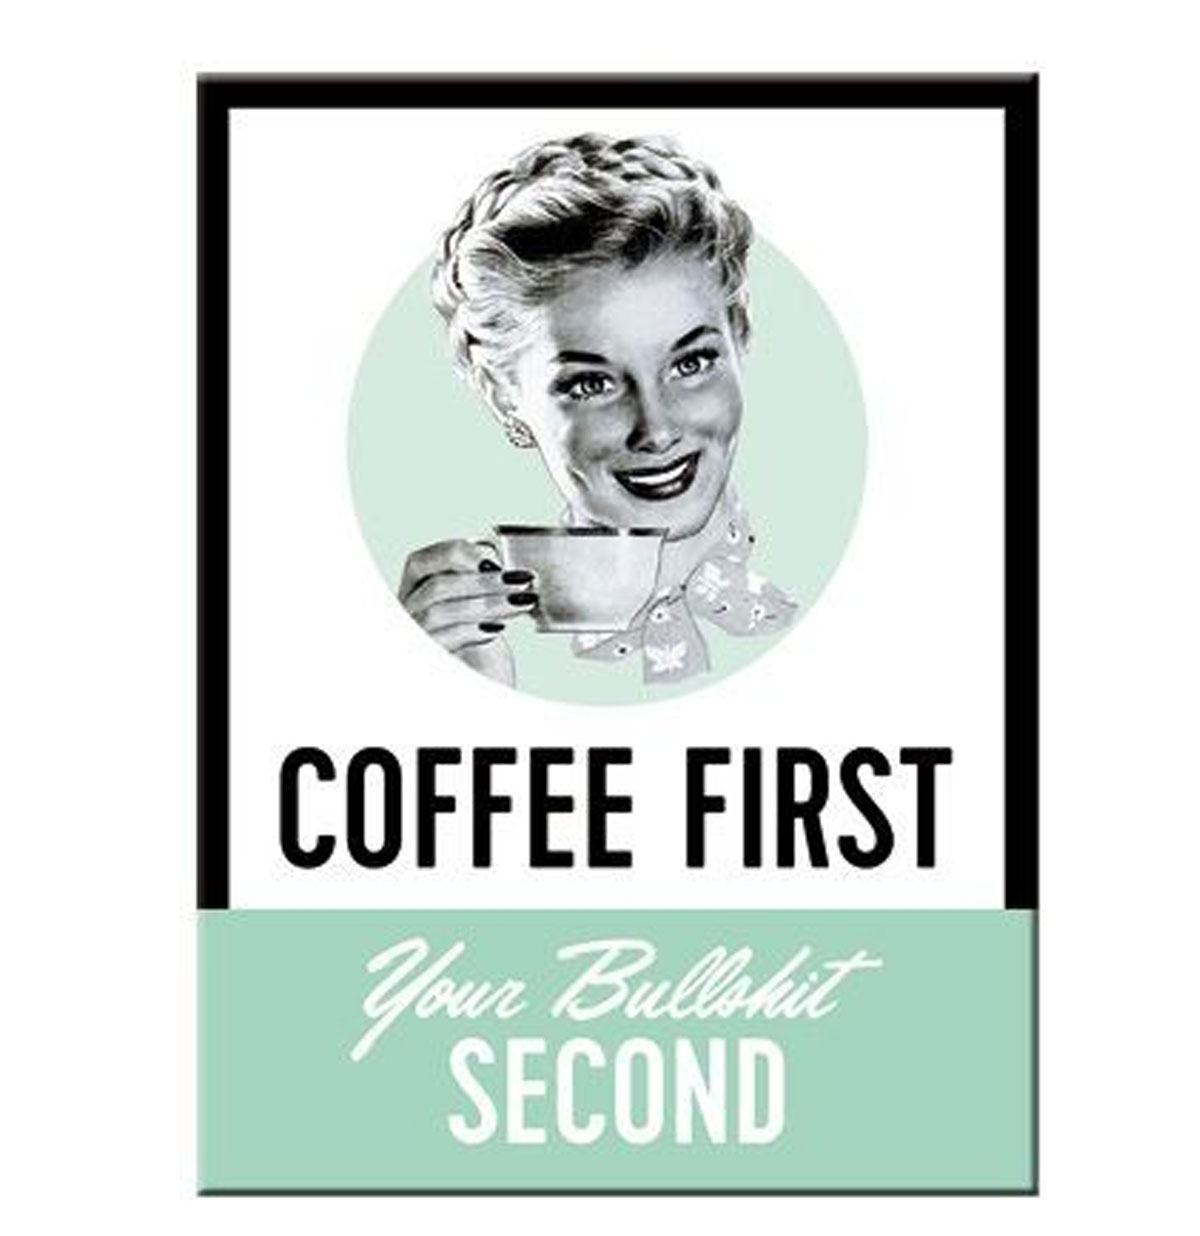 Coffee First Magneet